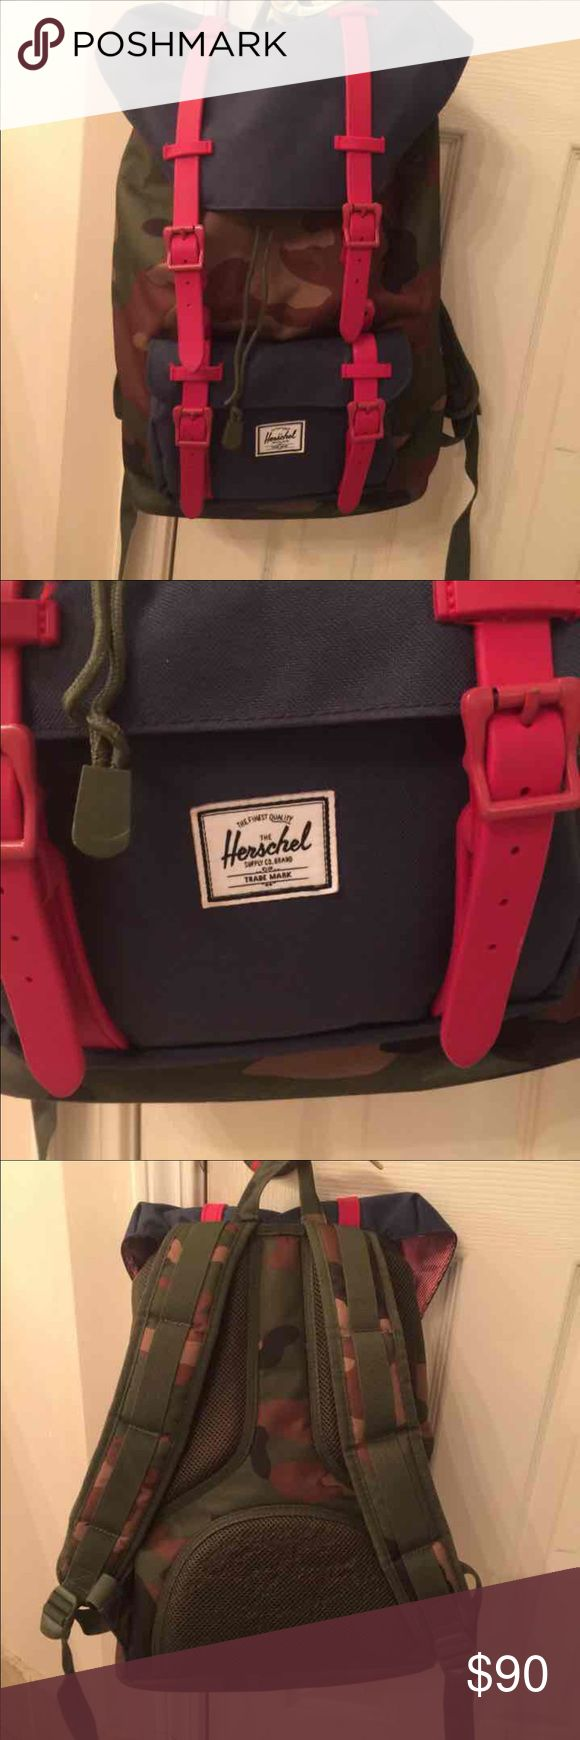 Herschel Camo Backpack Lightly used. Like new on the inside. Few snags in the back as shown in the last picture. No trades. Price is firm. Herschel Supply Company Bags Backpacks